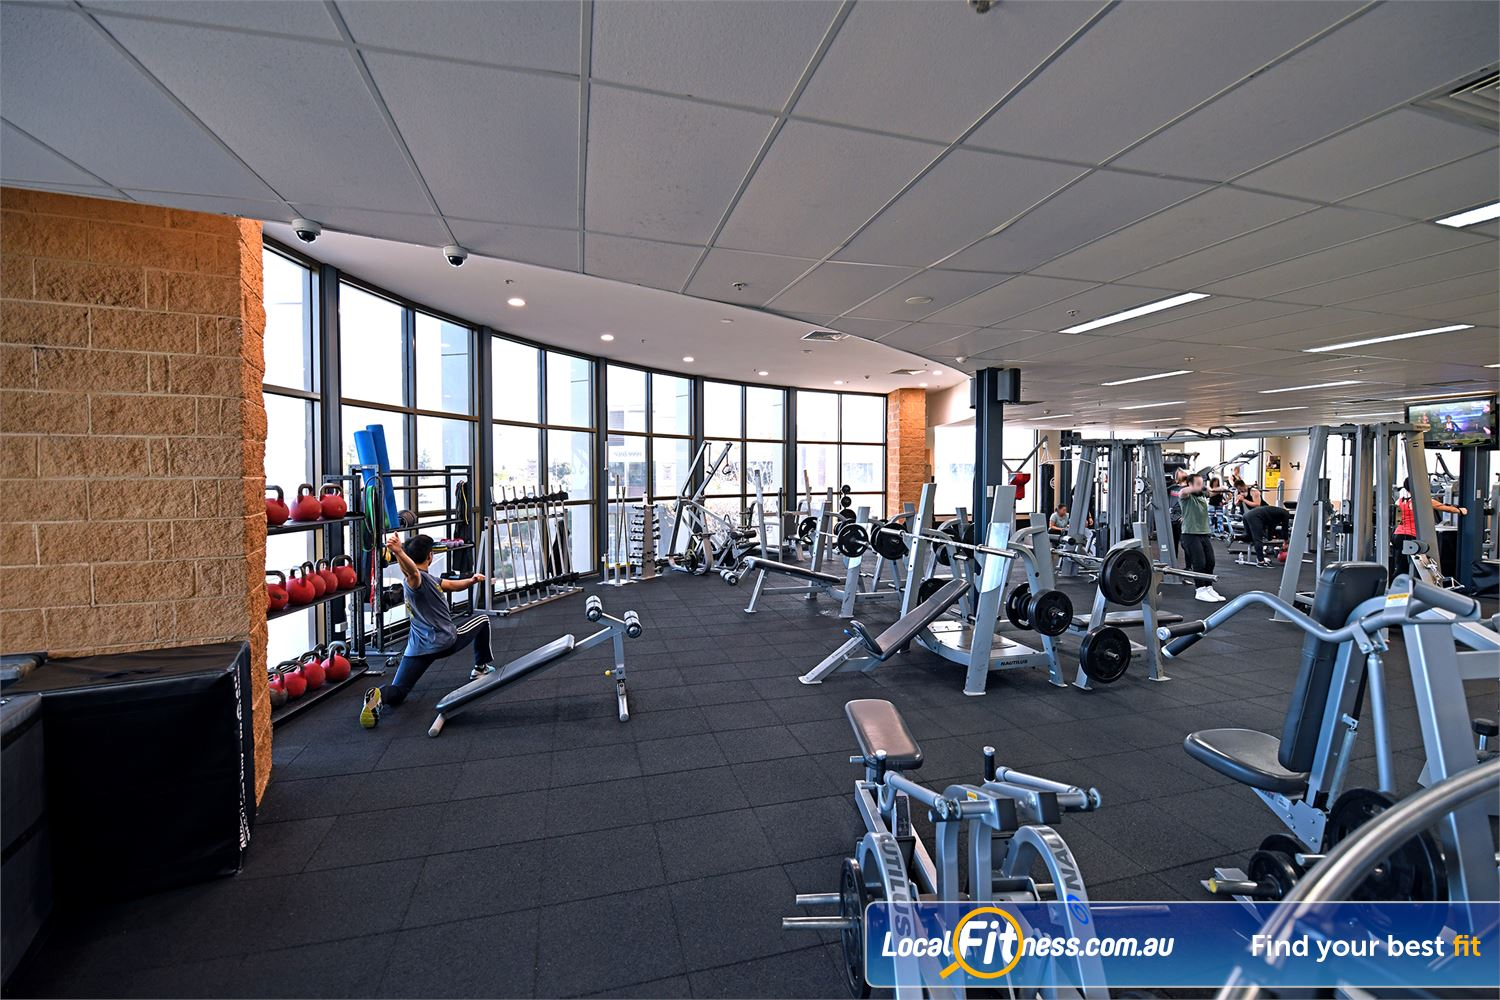 Goodlife Health Clubs Point Cook Welcome to our 24 hour Point Cook gym.